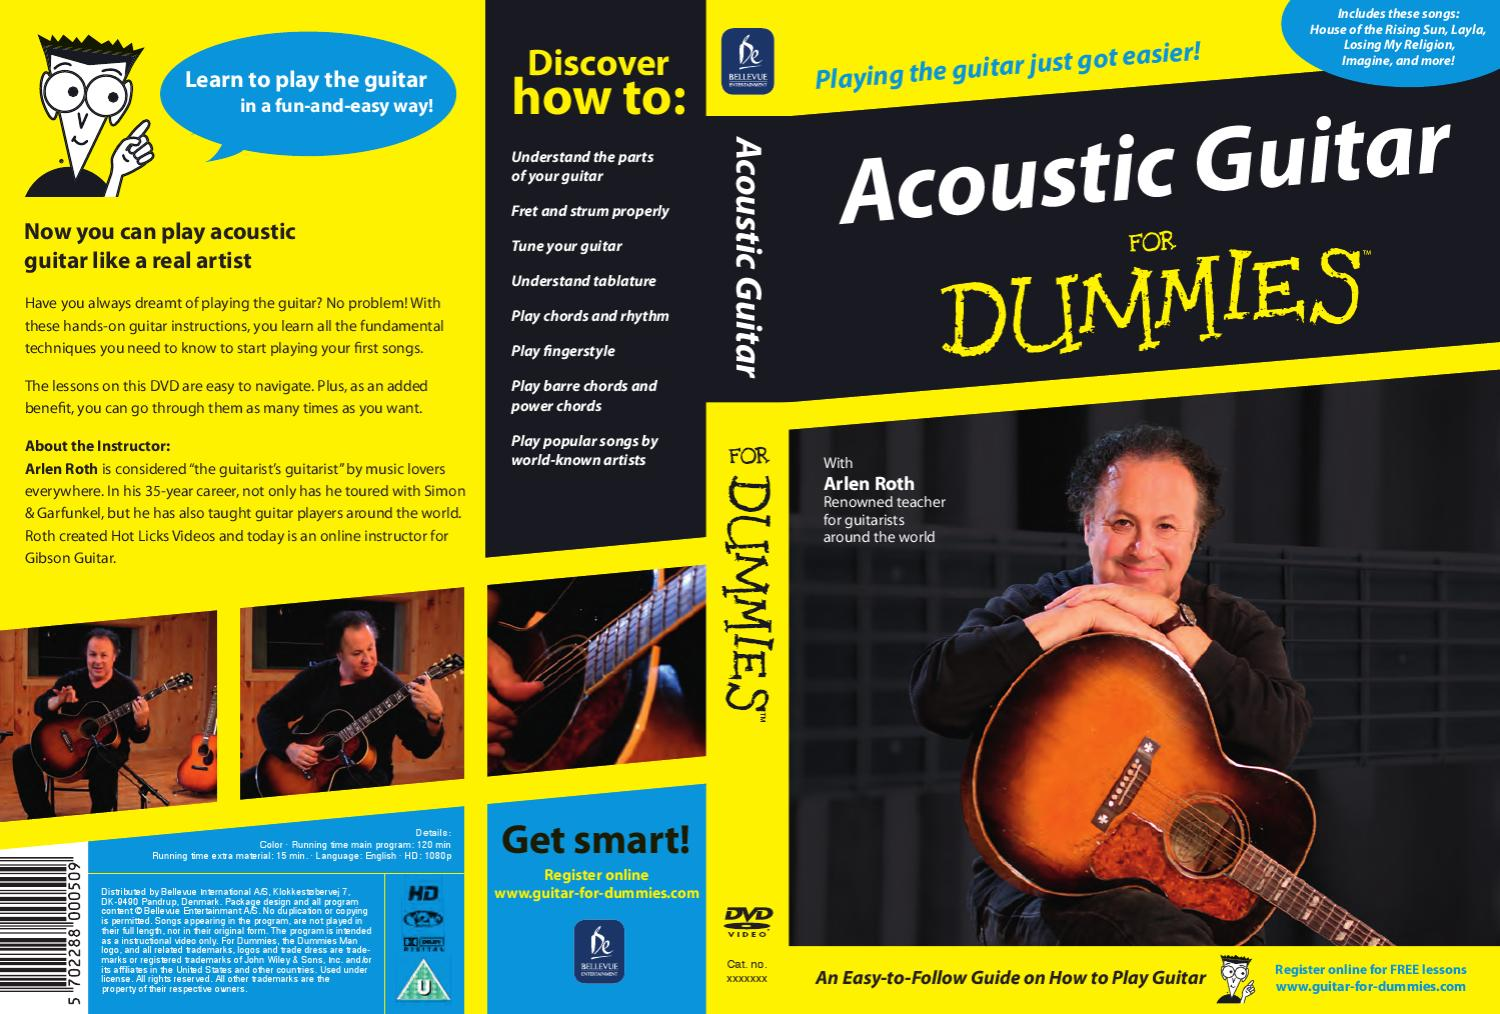 guitar for dummies artwork by bellevue entertainment a s issuu. Black Bedroom Furniture Sets. Home Design Ideas